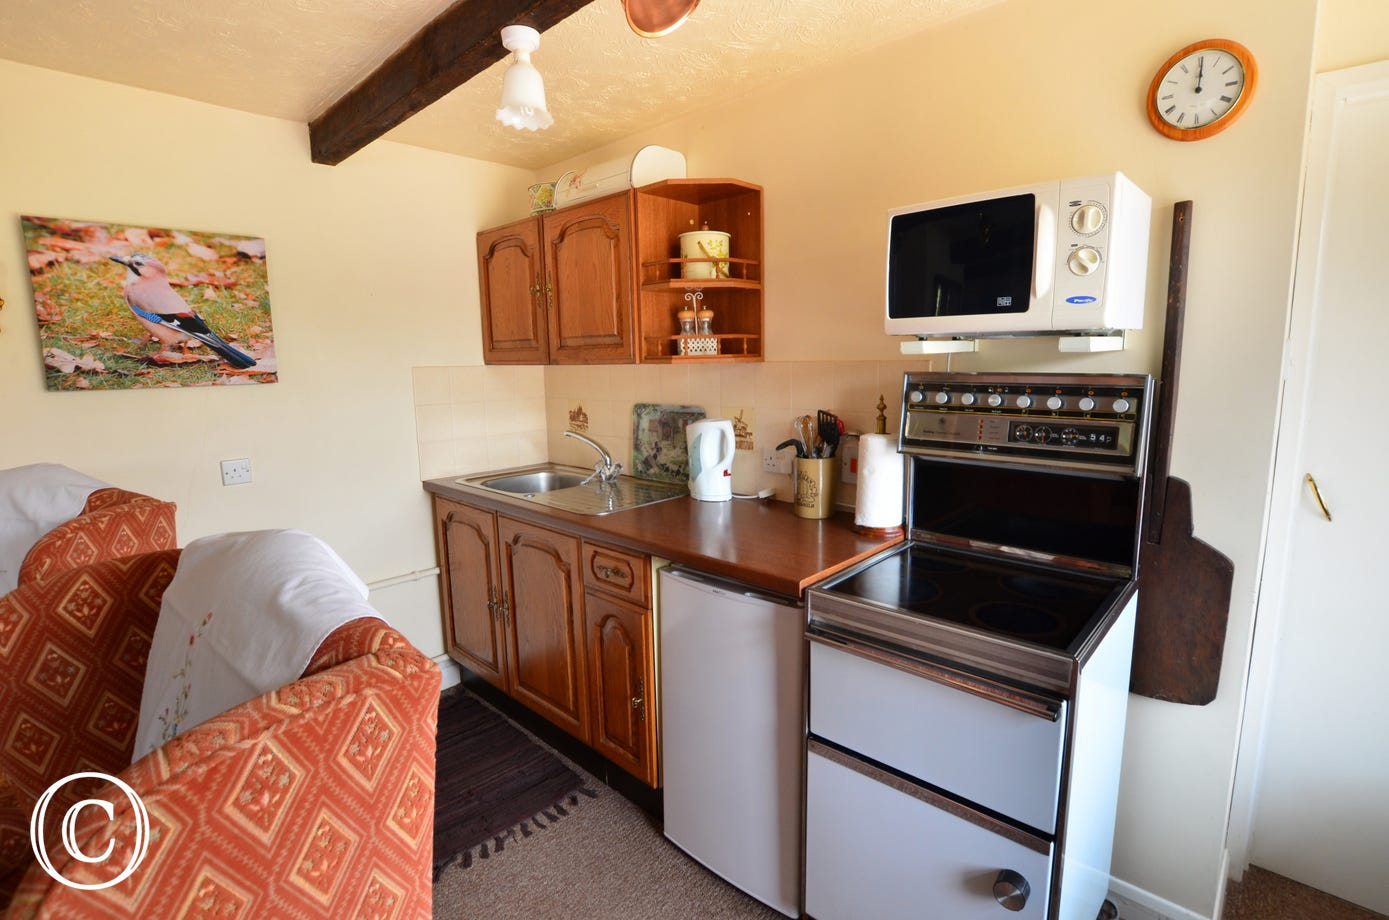 With an electric cooker, appliances and a table and chairs for dining